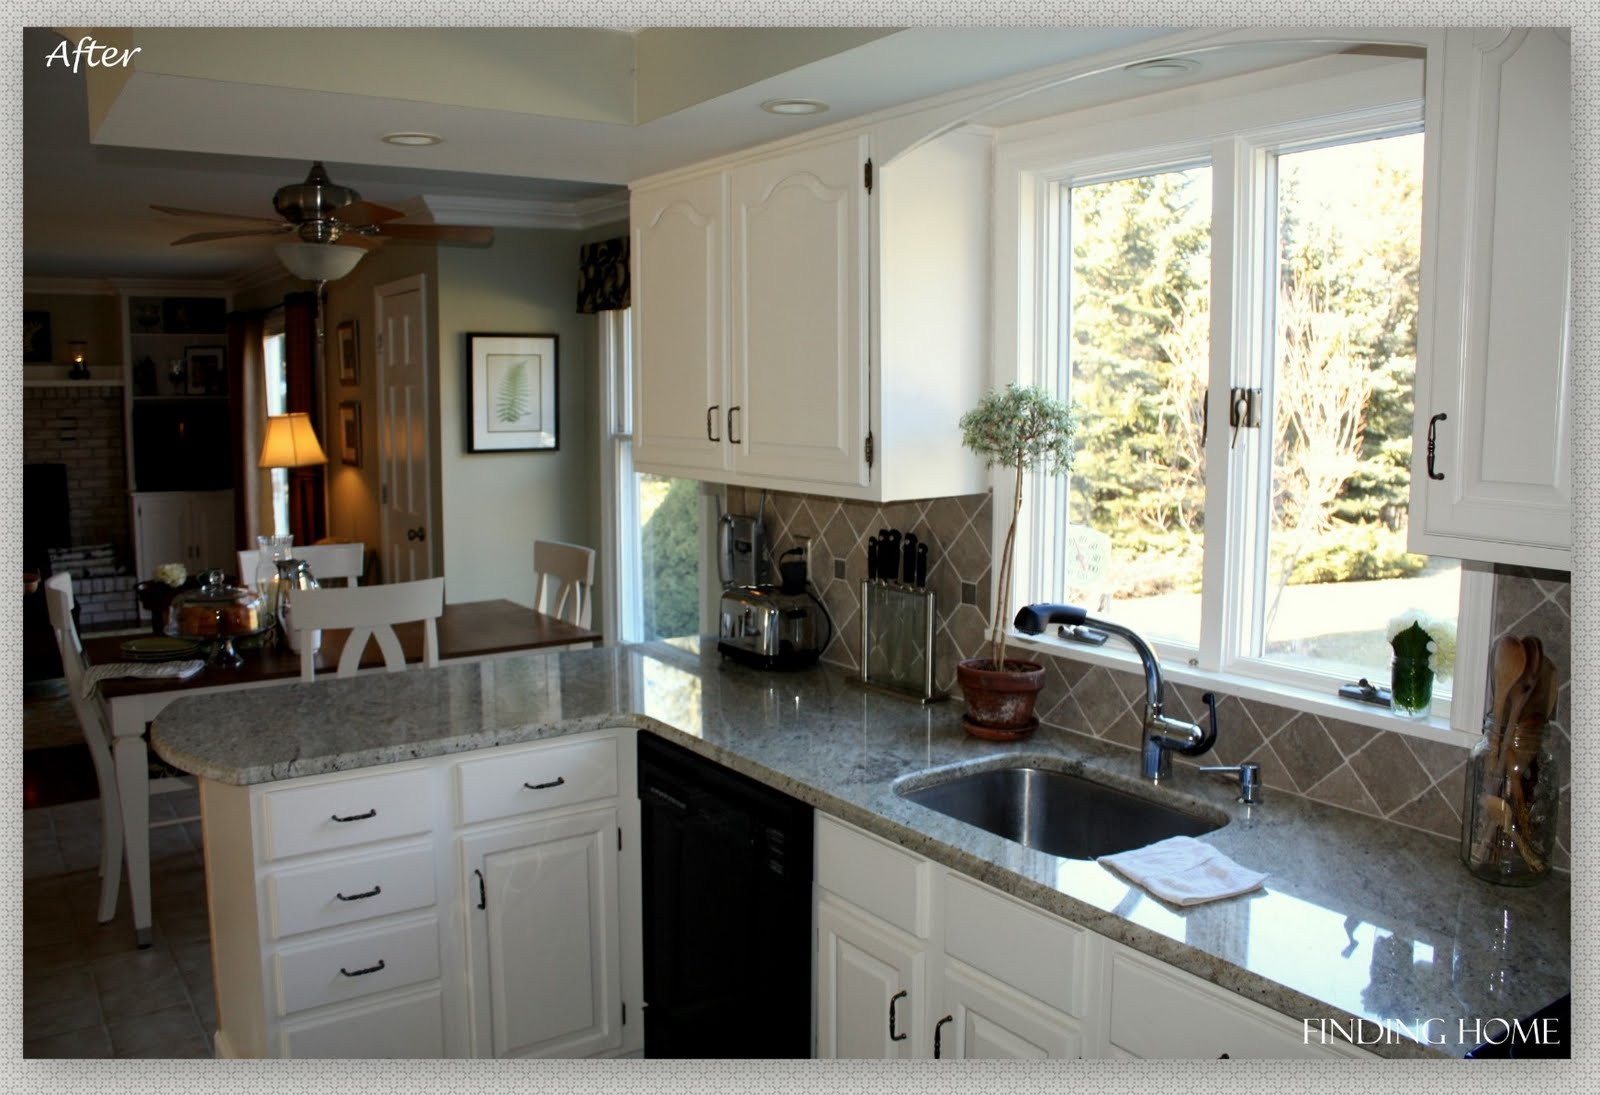 Uncategorized Painting Kitchen Cabinets White white painted kitchen cabinets before and after pictures brown cabinet